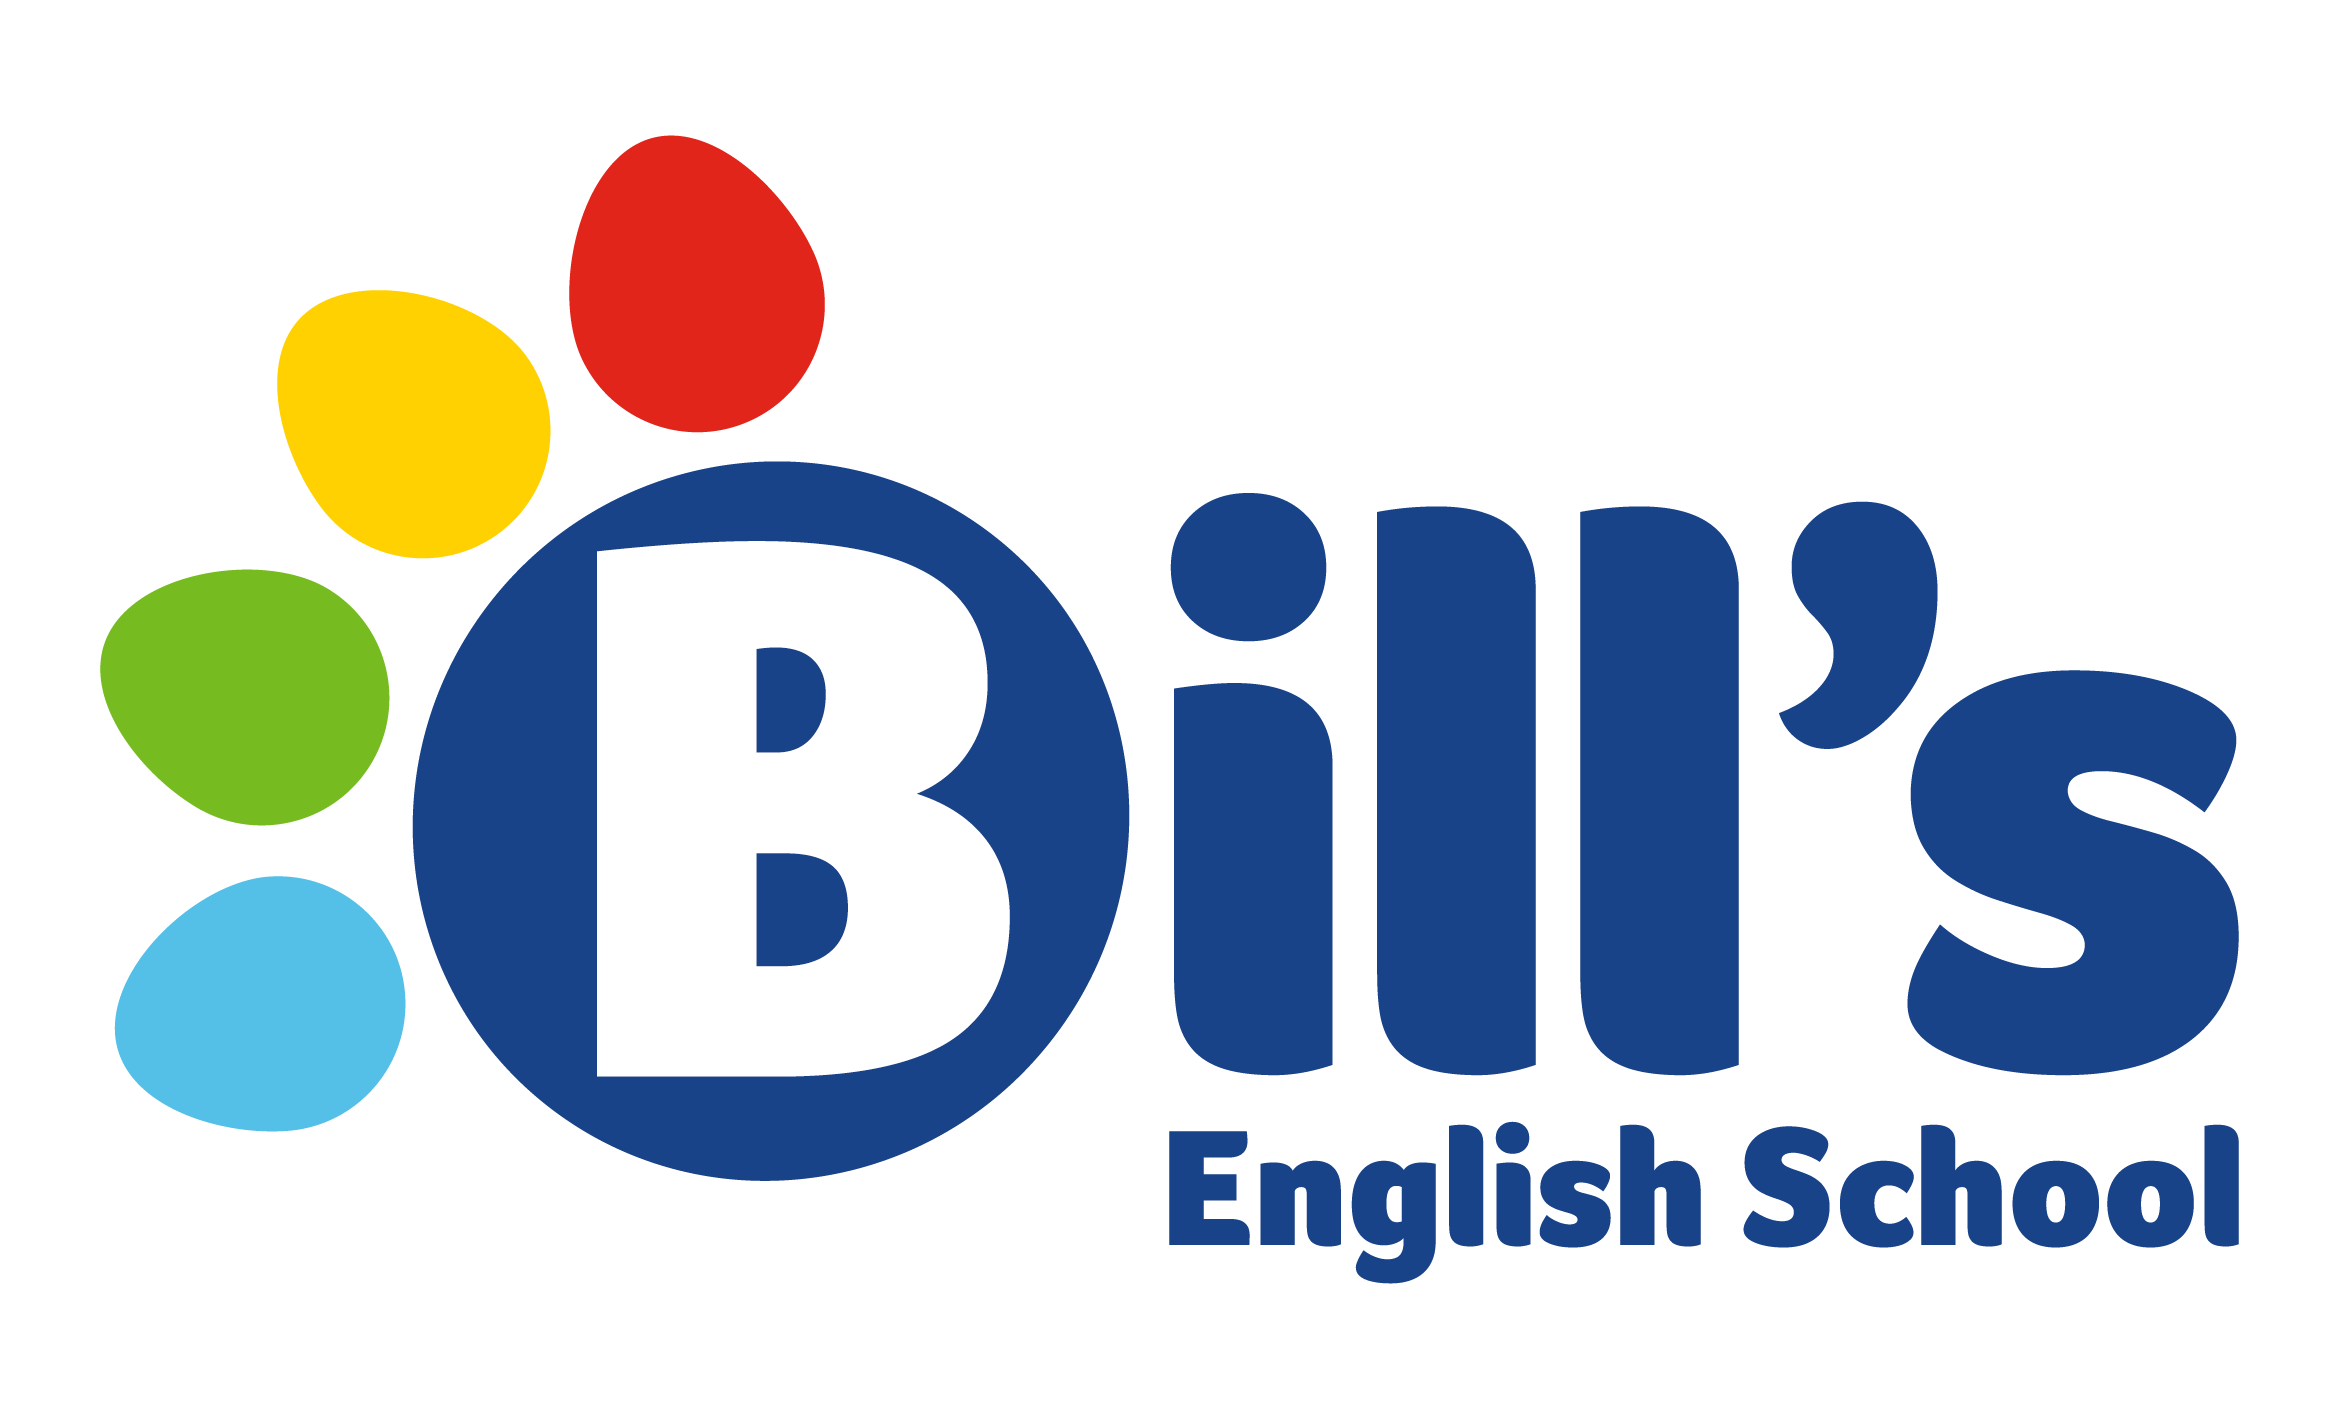 BILLS ENGLISH SCHOOL